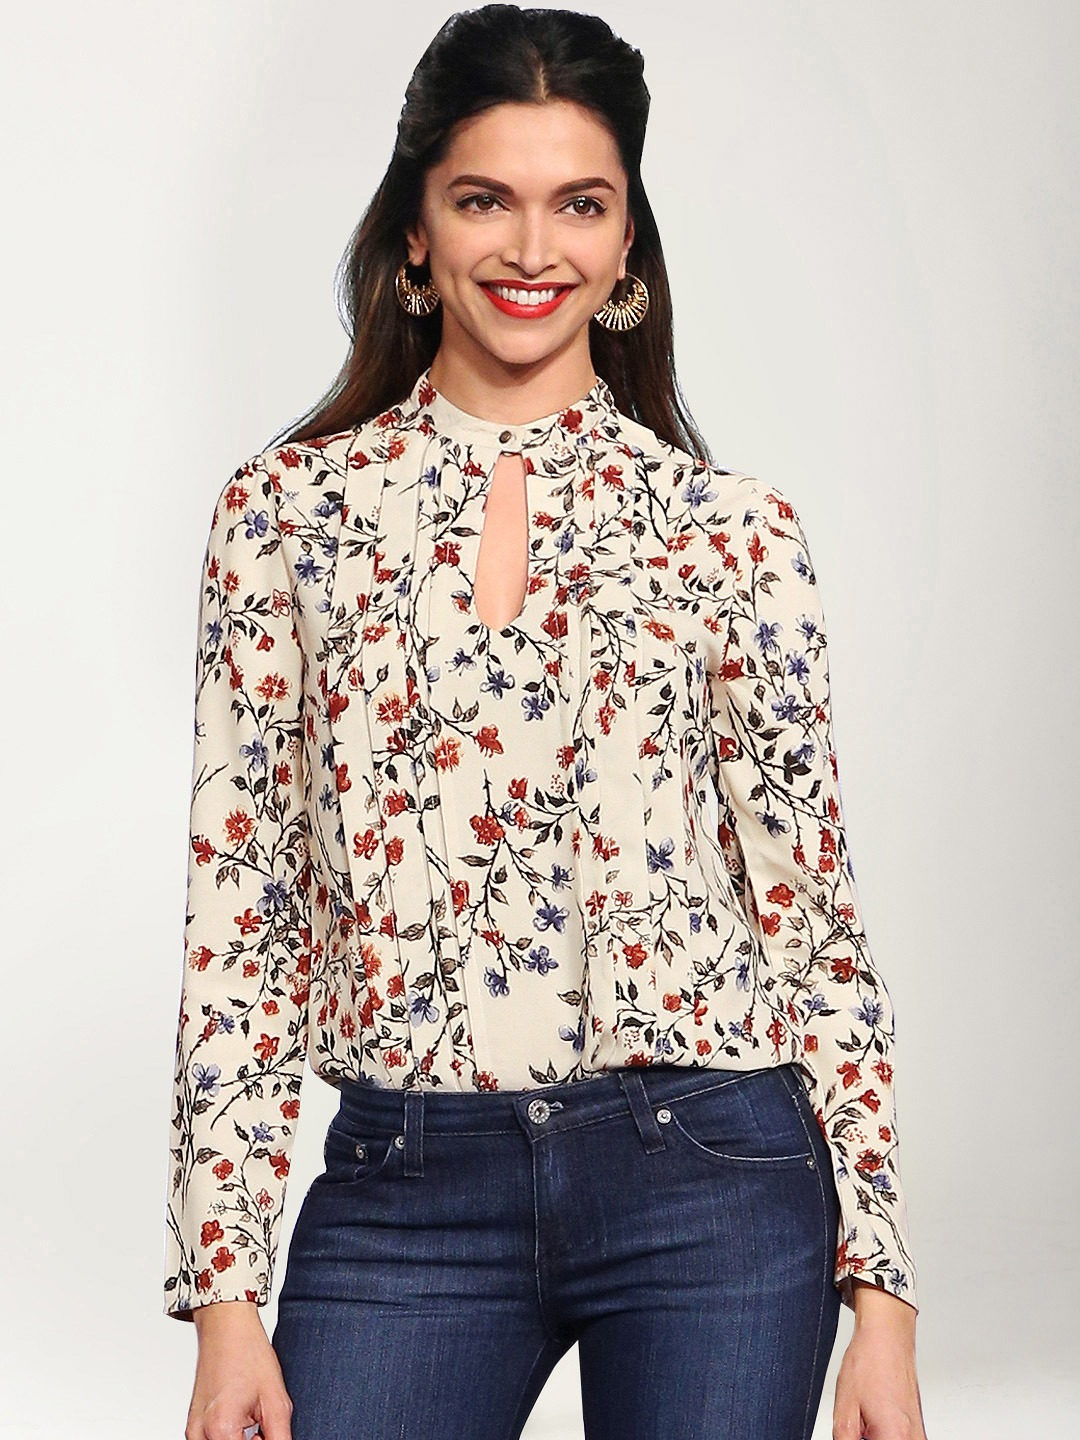 All About You from Deepika Padukone Beige Floral Printed Top